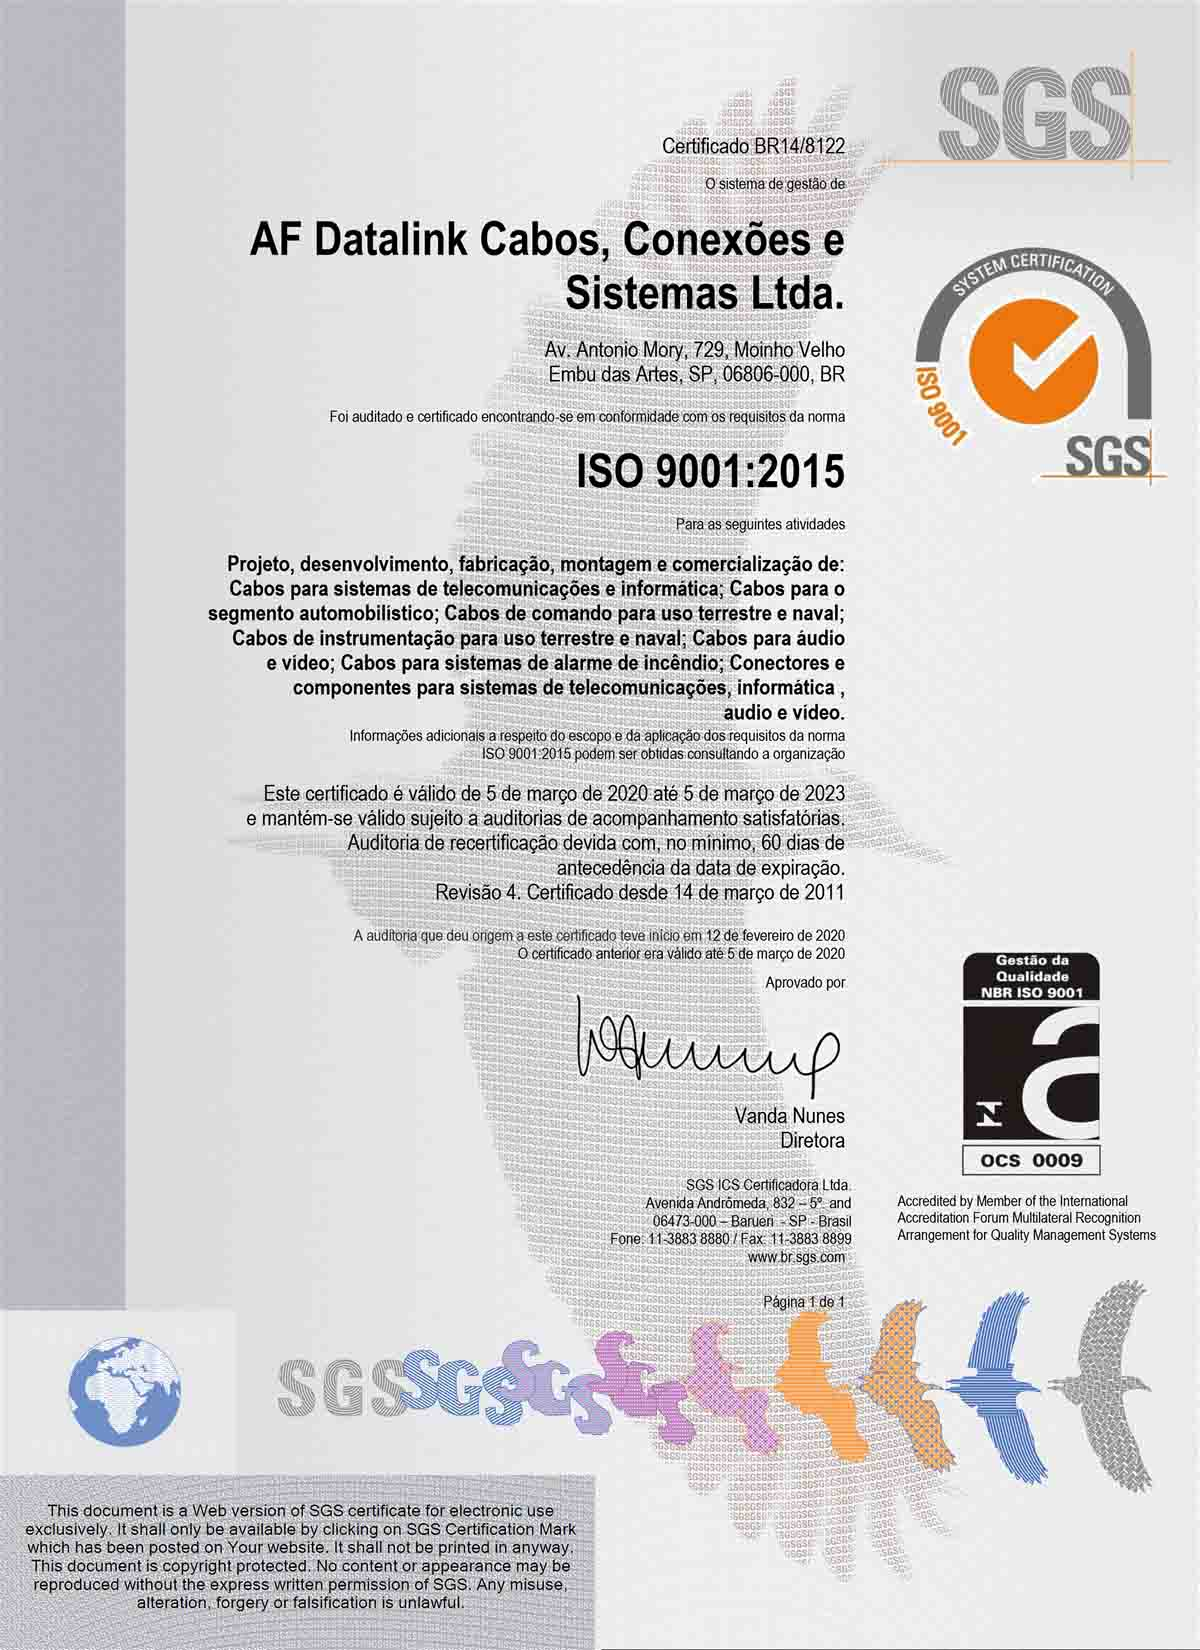 Certificado-ISO9001-2015-PORT.jpg?time=1601244415